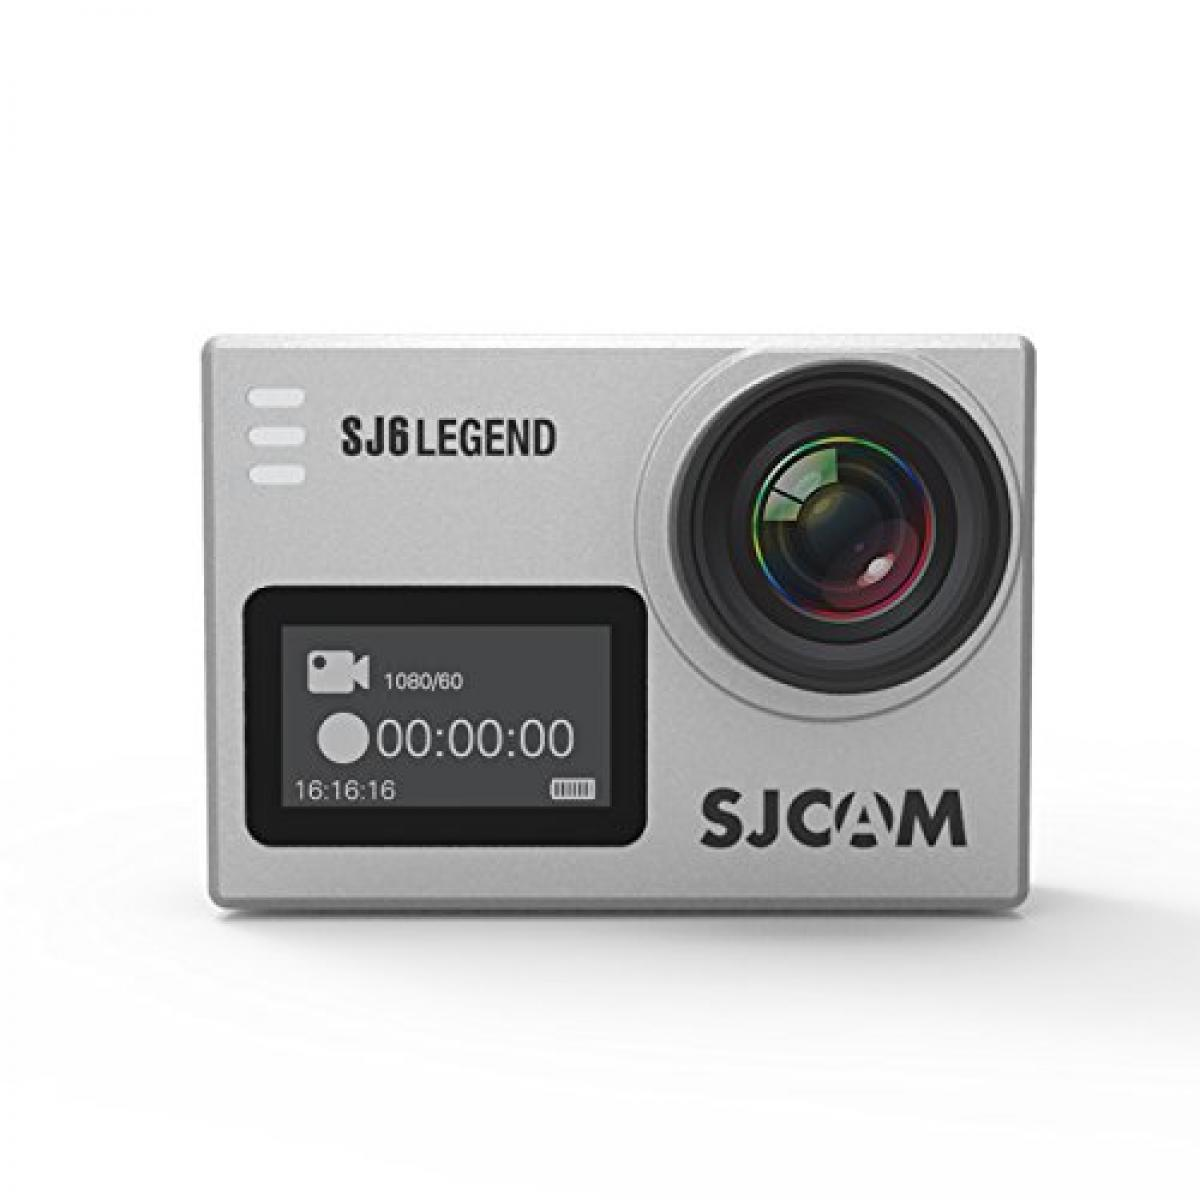 SJCAM SJ6 LEGEND 4K Action Camera